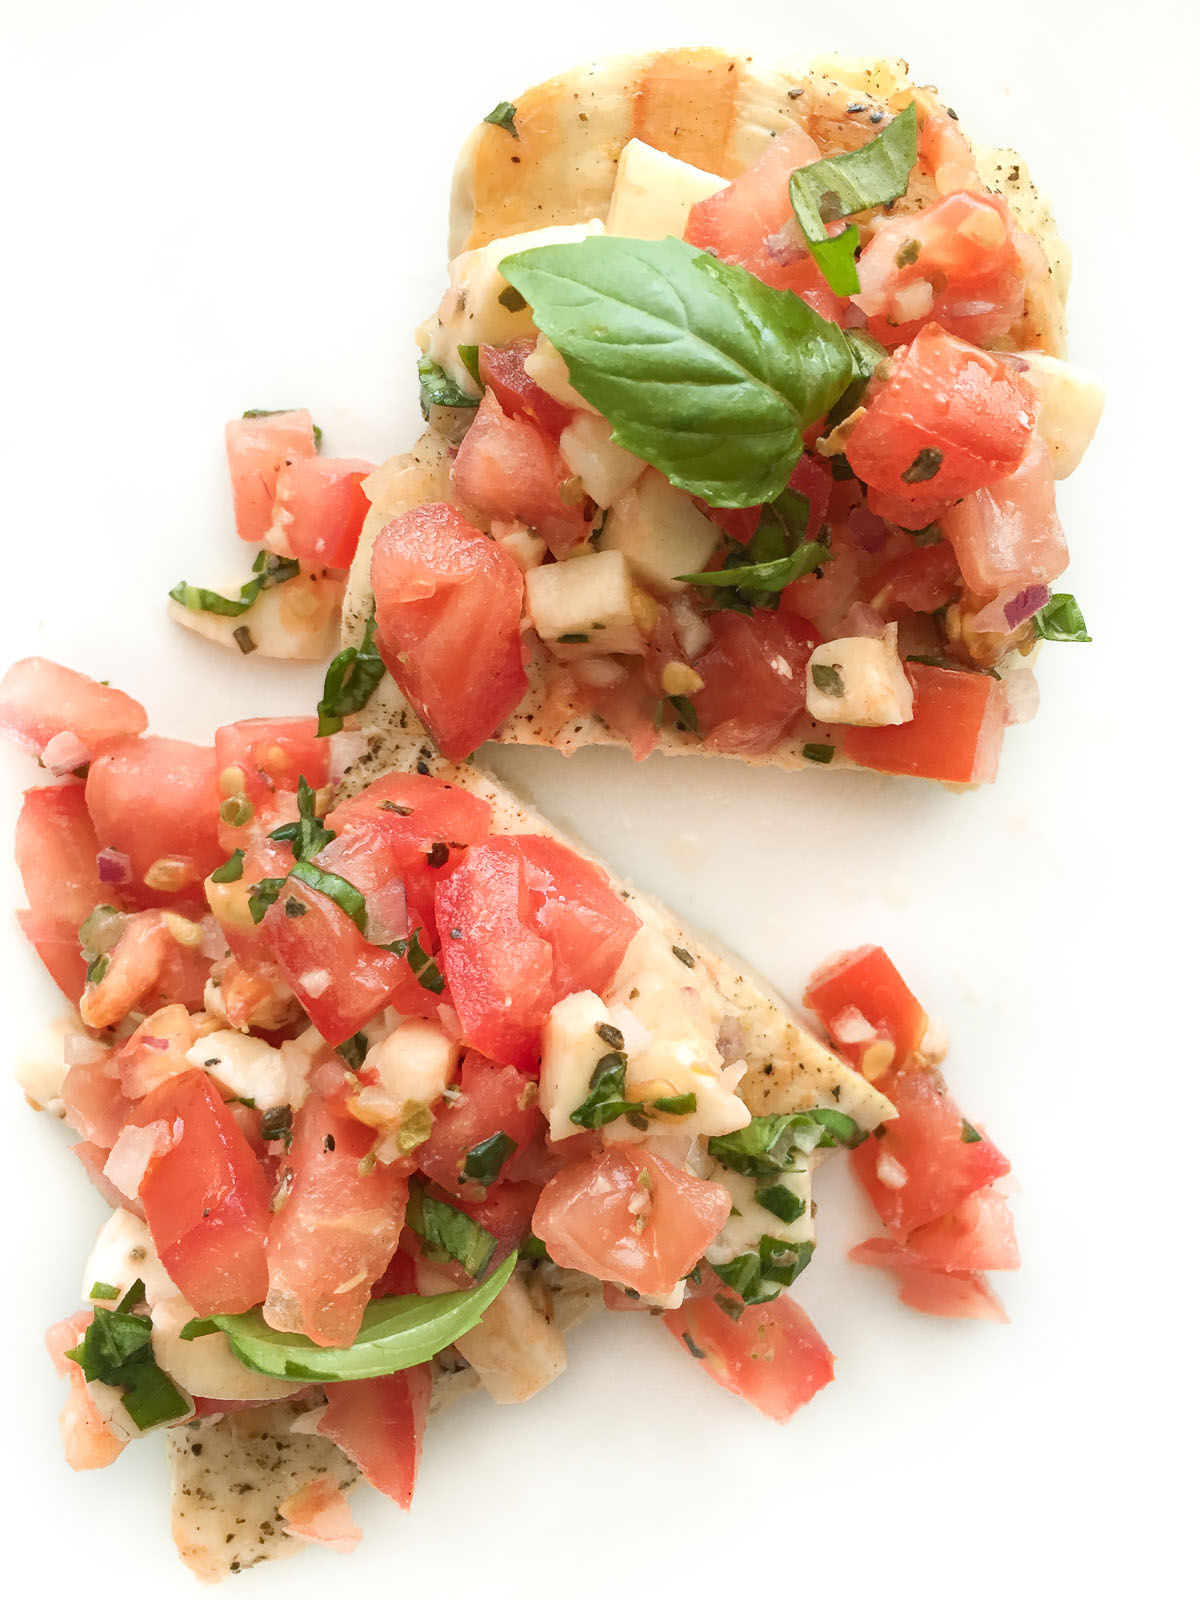 Grilled Chicken with Bruschetta Topping